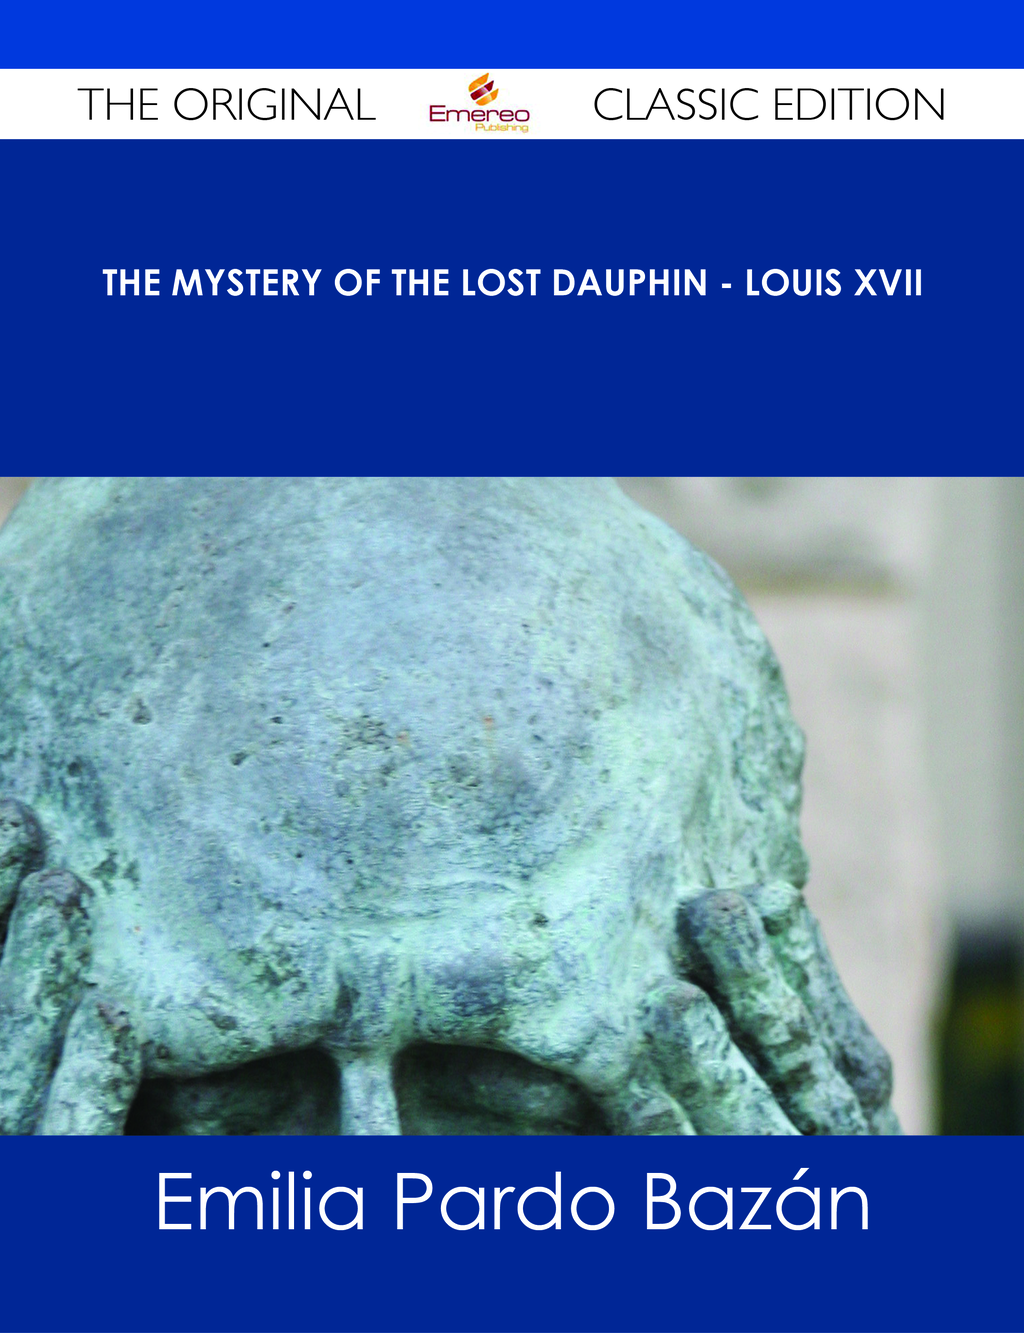 The Mystery of the Lost Dauphin - Louis XVII - The Original Classic Edition